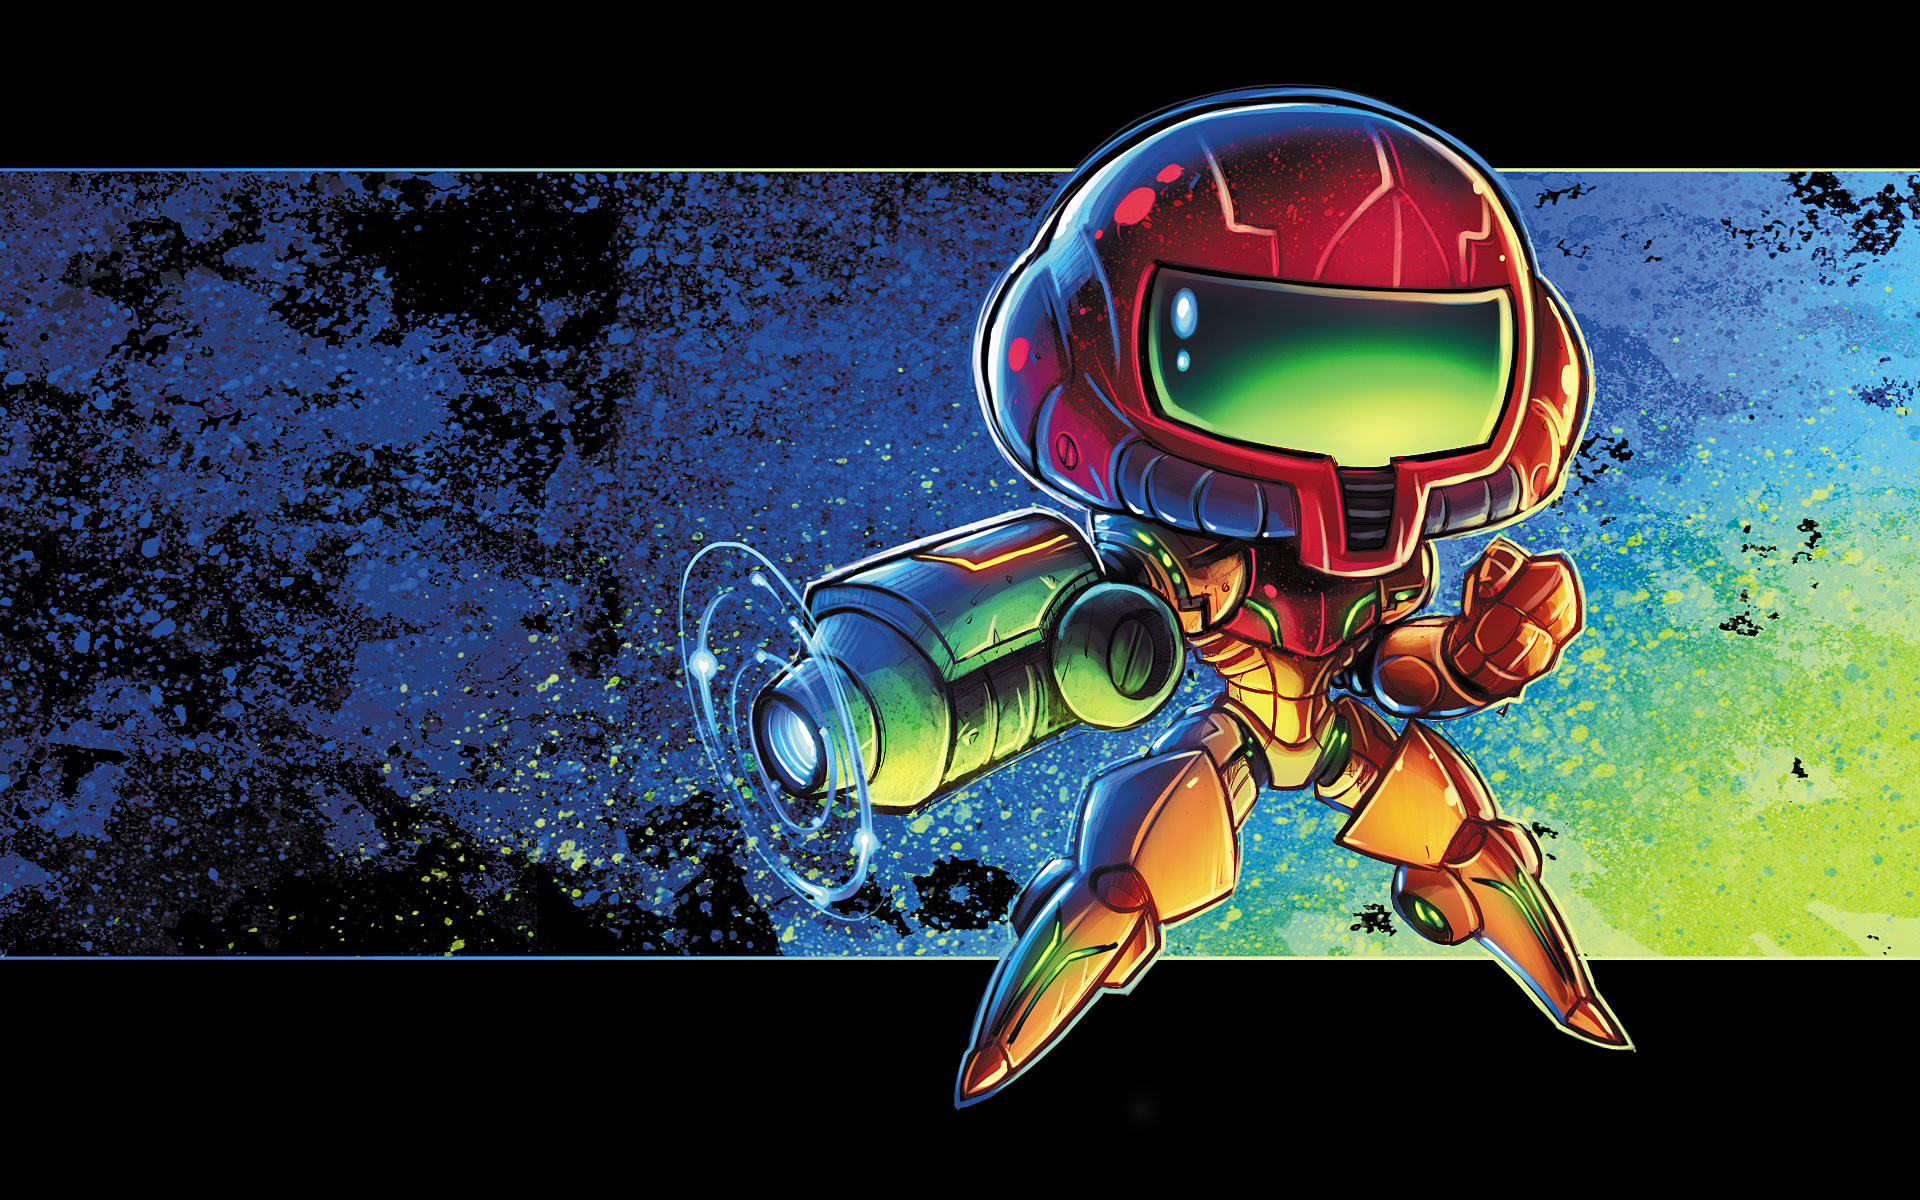 Metroid Chibi by RobDuenas